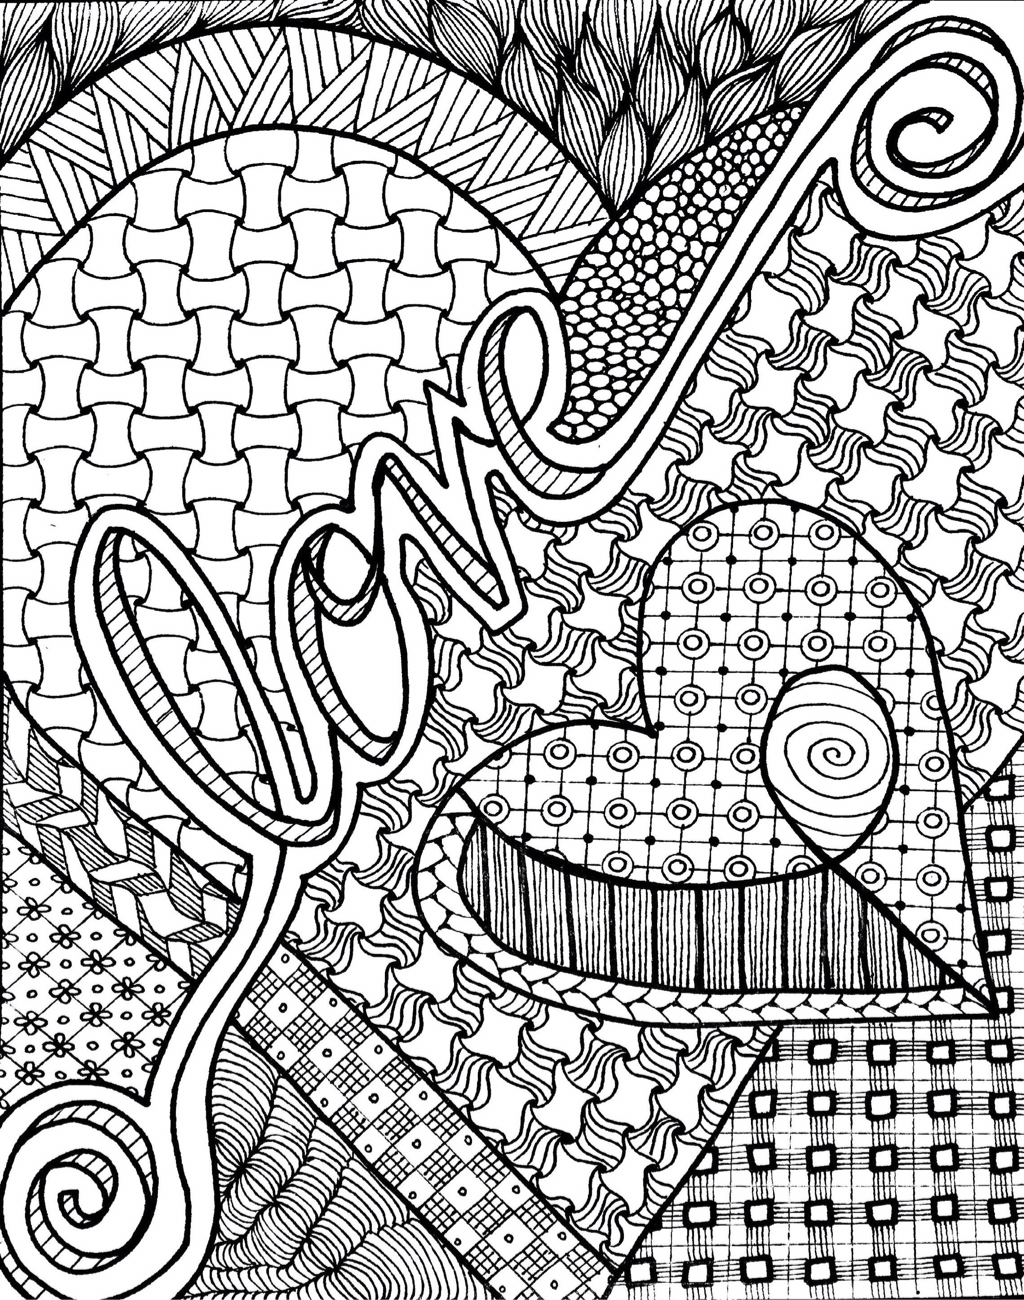 Free zentangleinspired 'love' coloring page for adults or